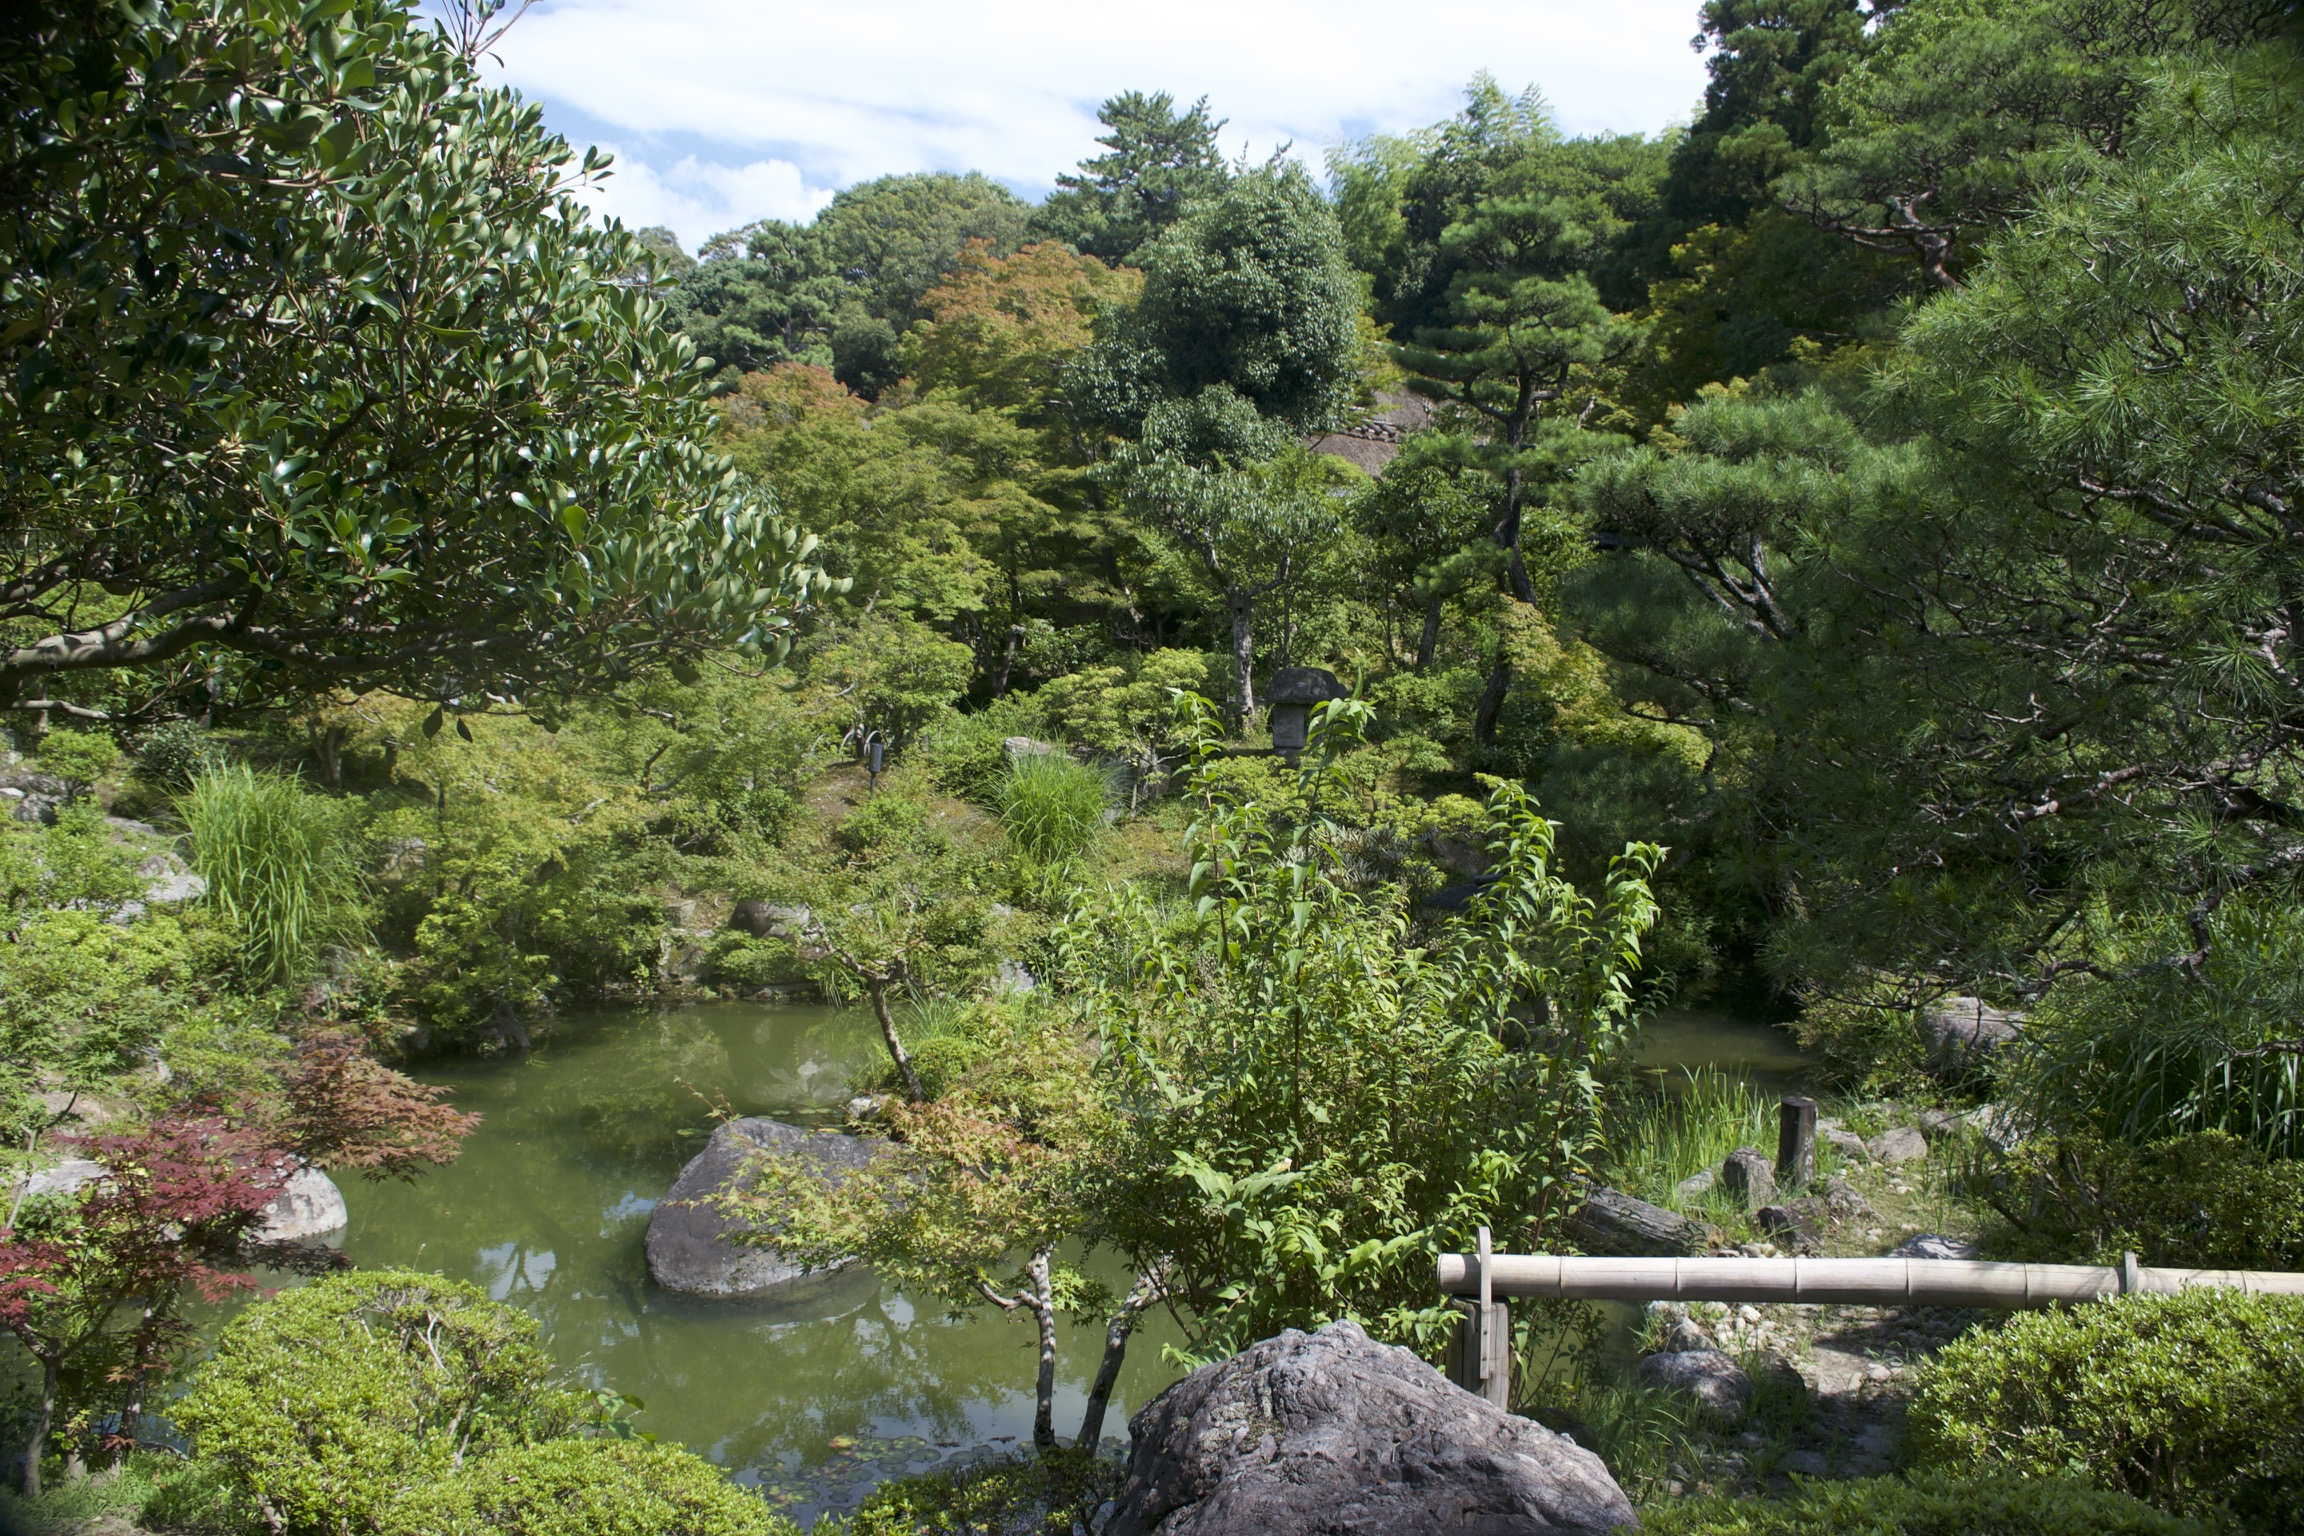 A small pond sits surrounded on all sides by lush greenery.